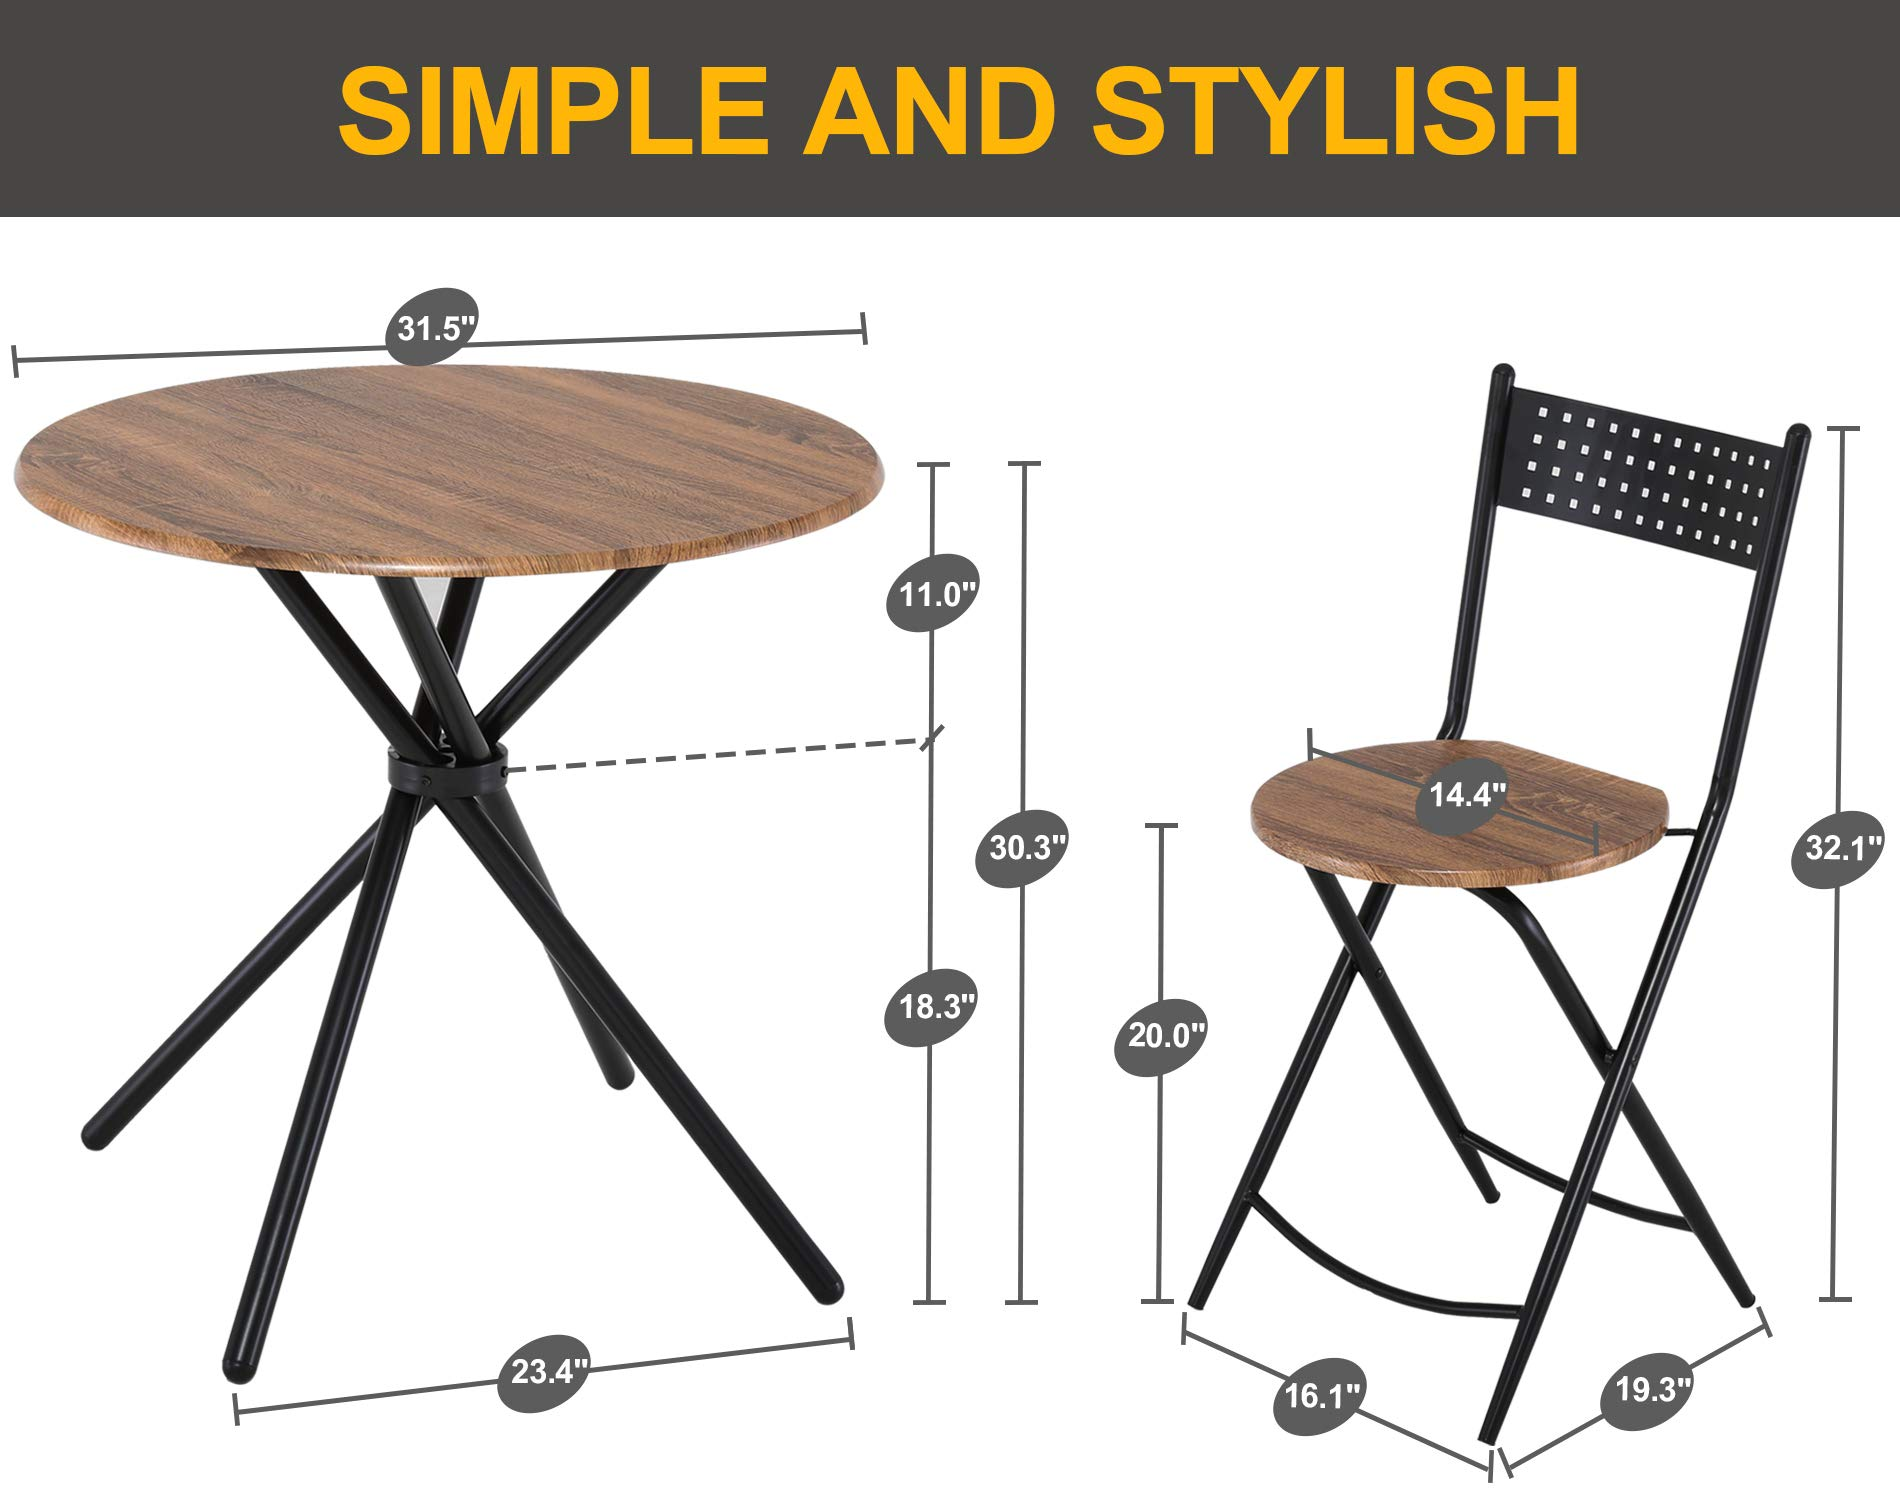 Homury 5pcs Dining Table Set Kitchen Table Kitchen Furniture Round Dining Table with 4 Round Dining Chair Dining Set Wood Coffee Table Set Home Office Table Set by Homury (Image #7)